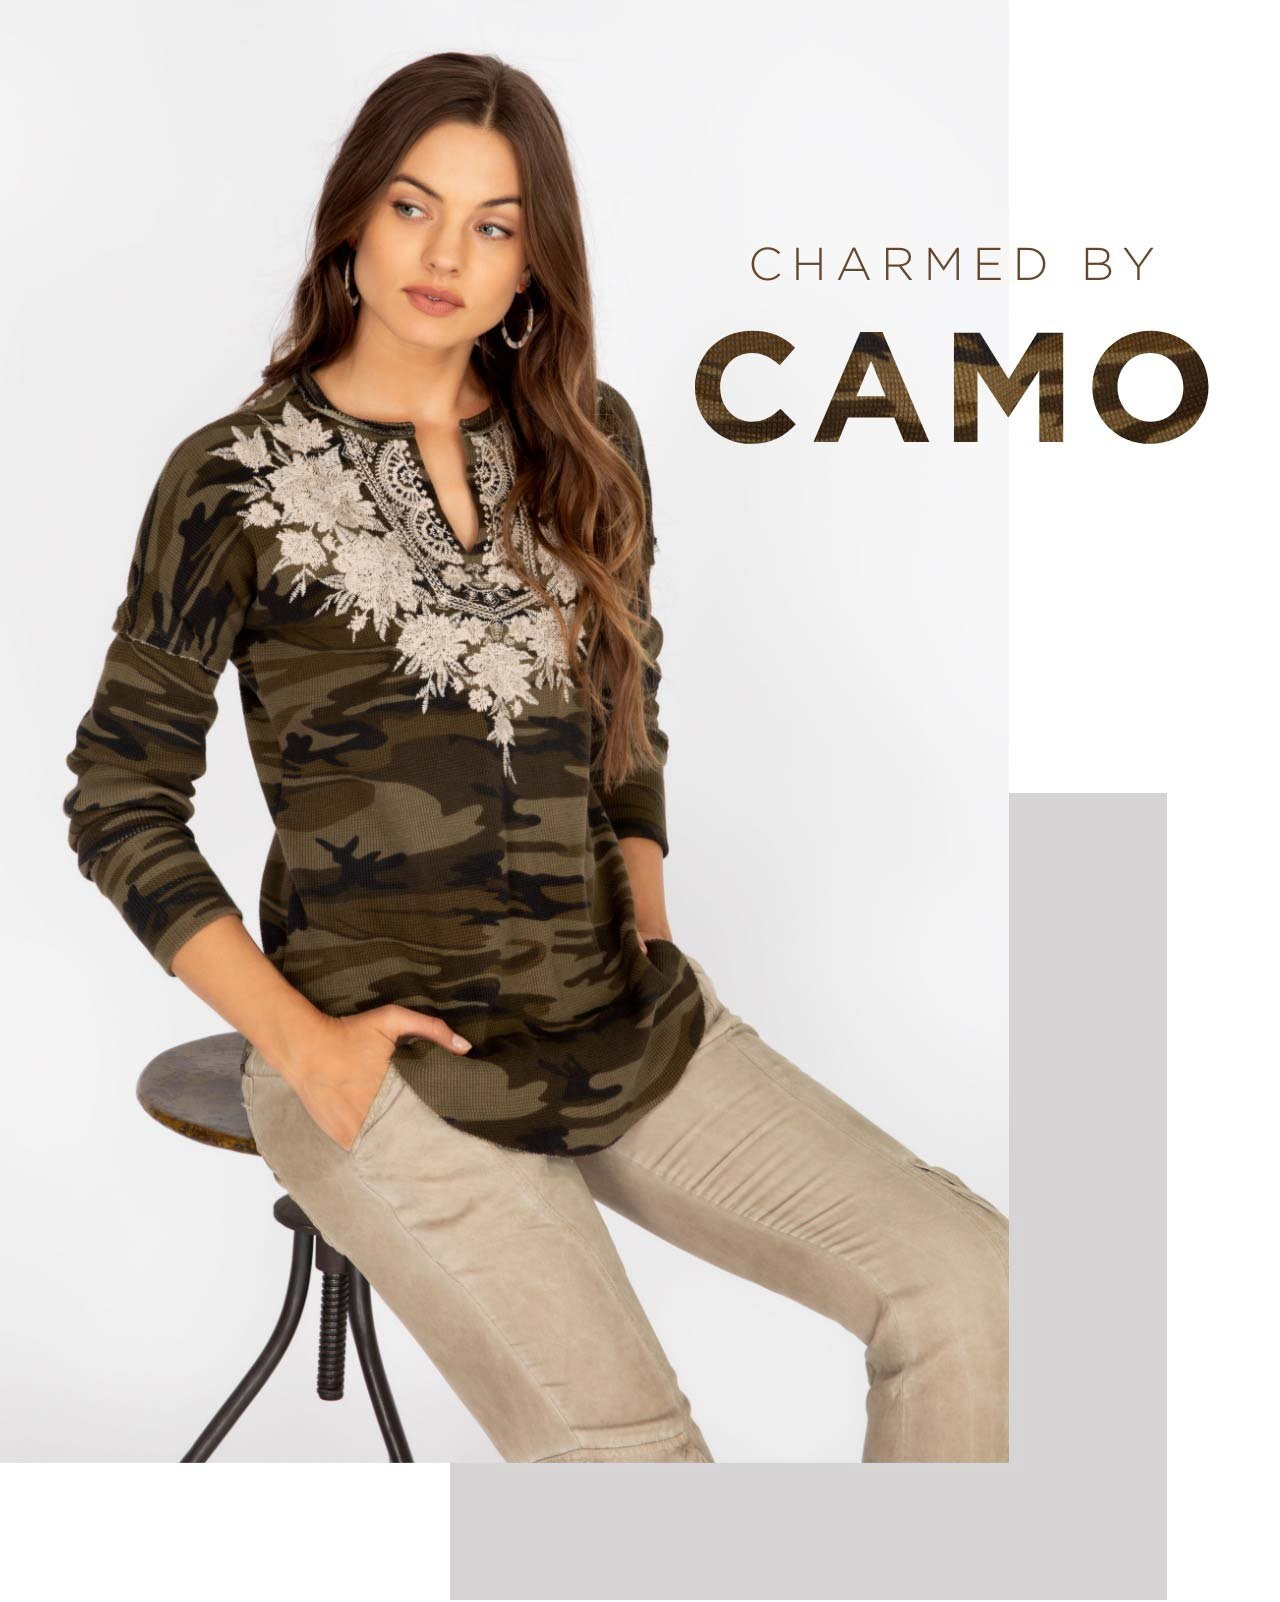 Charmed by Camouflage